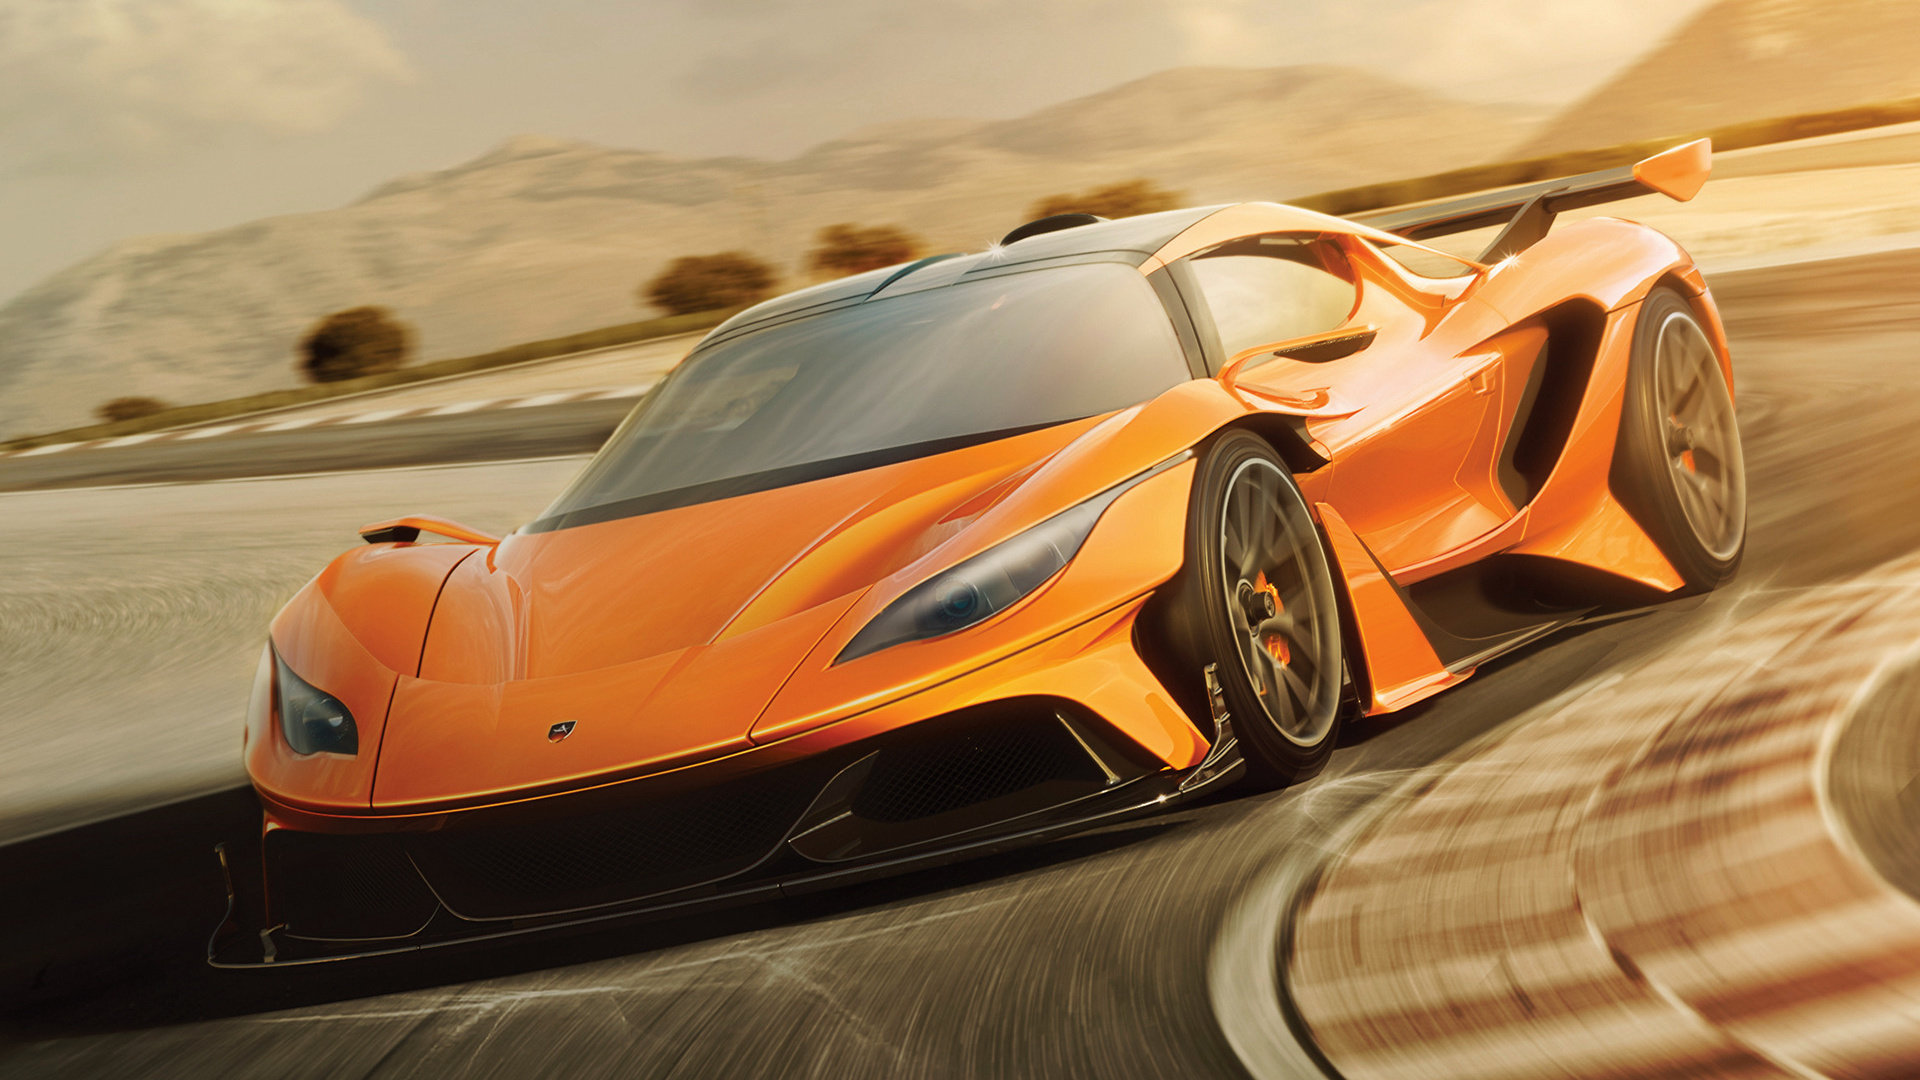 2016 Apollo Arrow Wallpapers And Hd Images Car Pixel